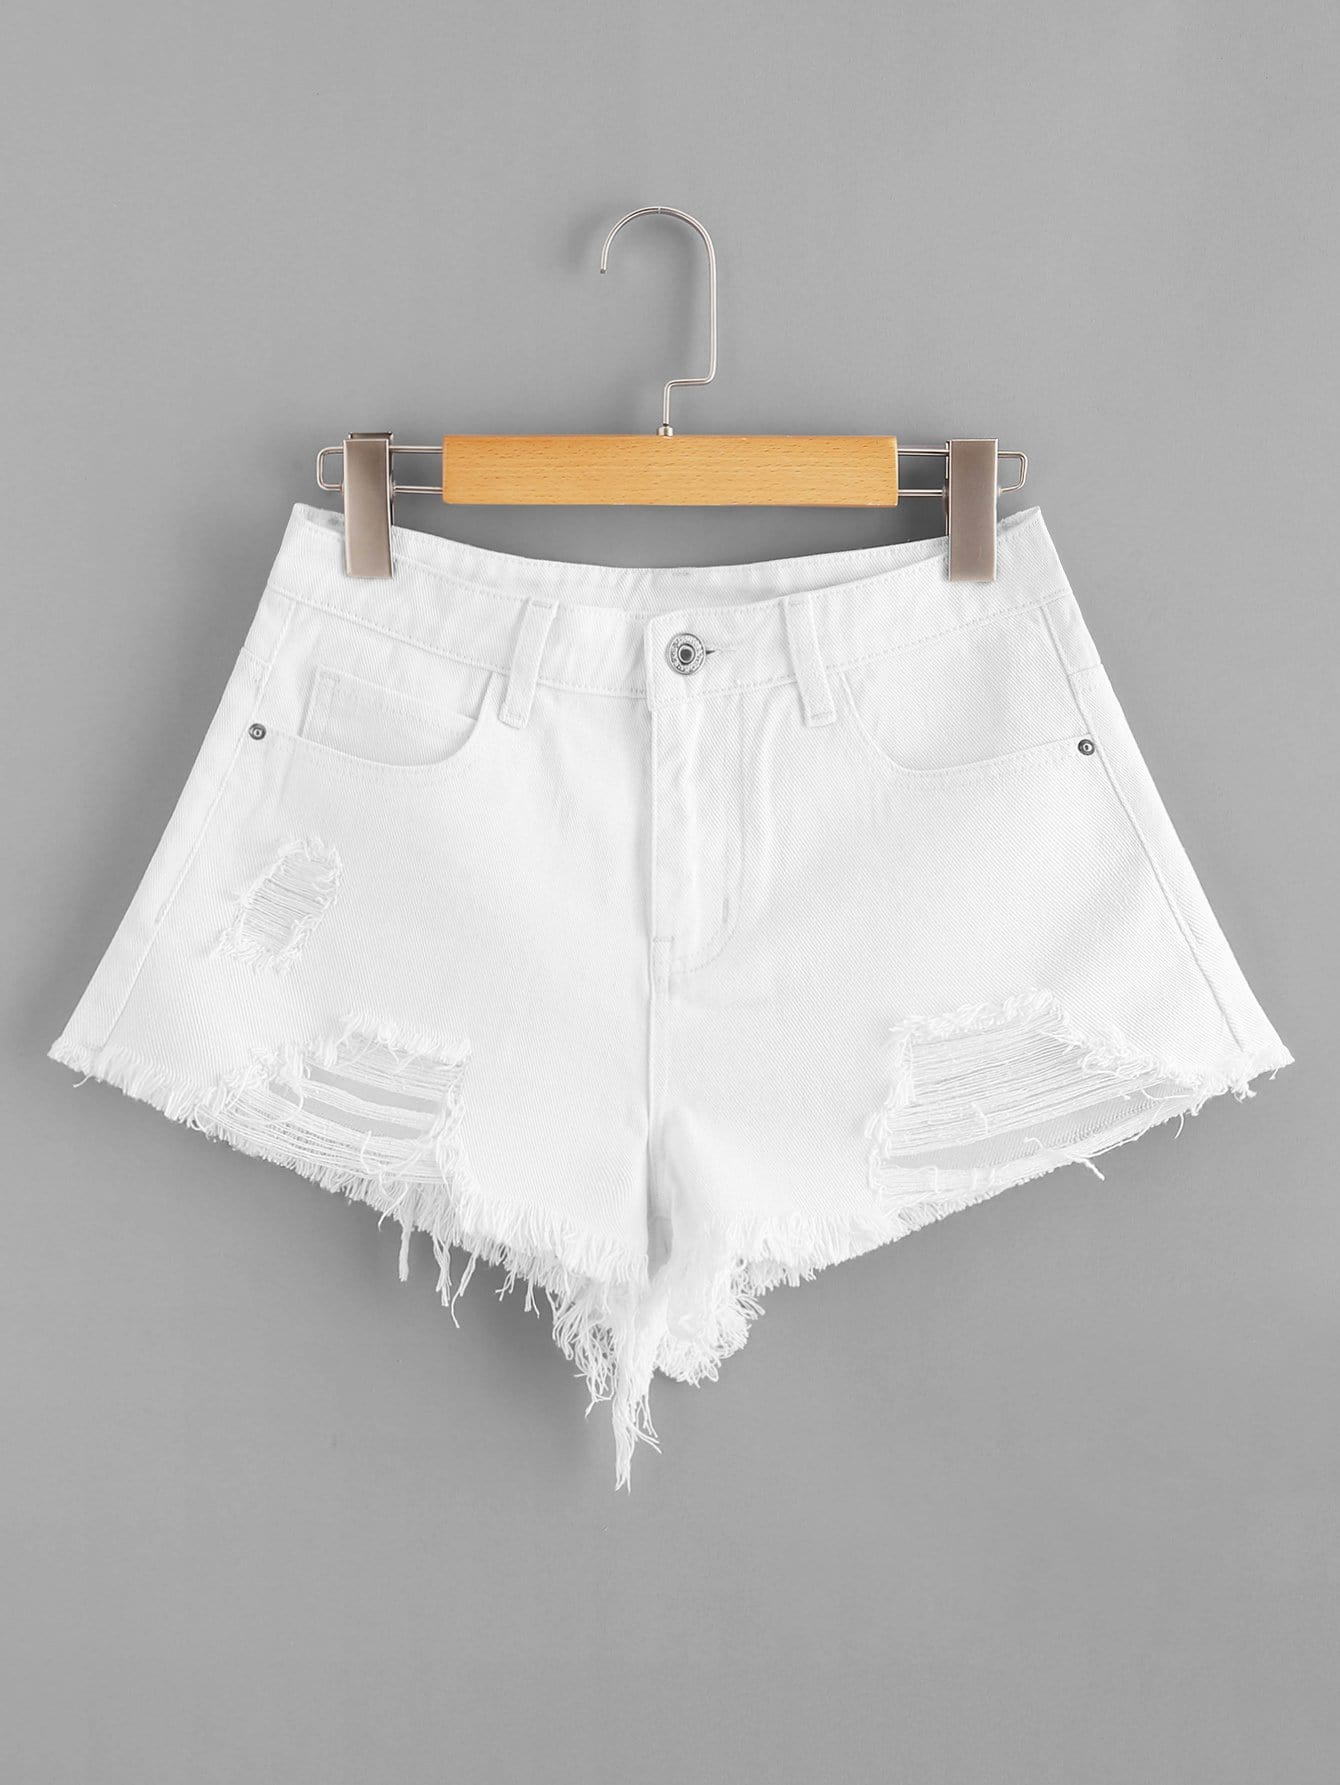 Ripped Detail Raw Hem Denim Shorts stark велосипед stark outpost 26 1 d 2018 синий зелёный голубой 20